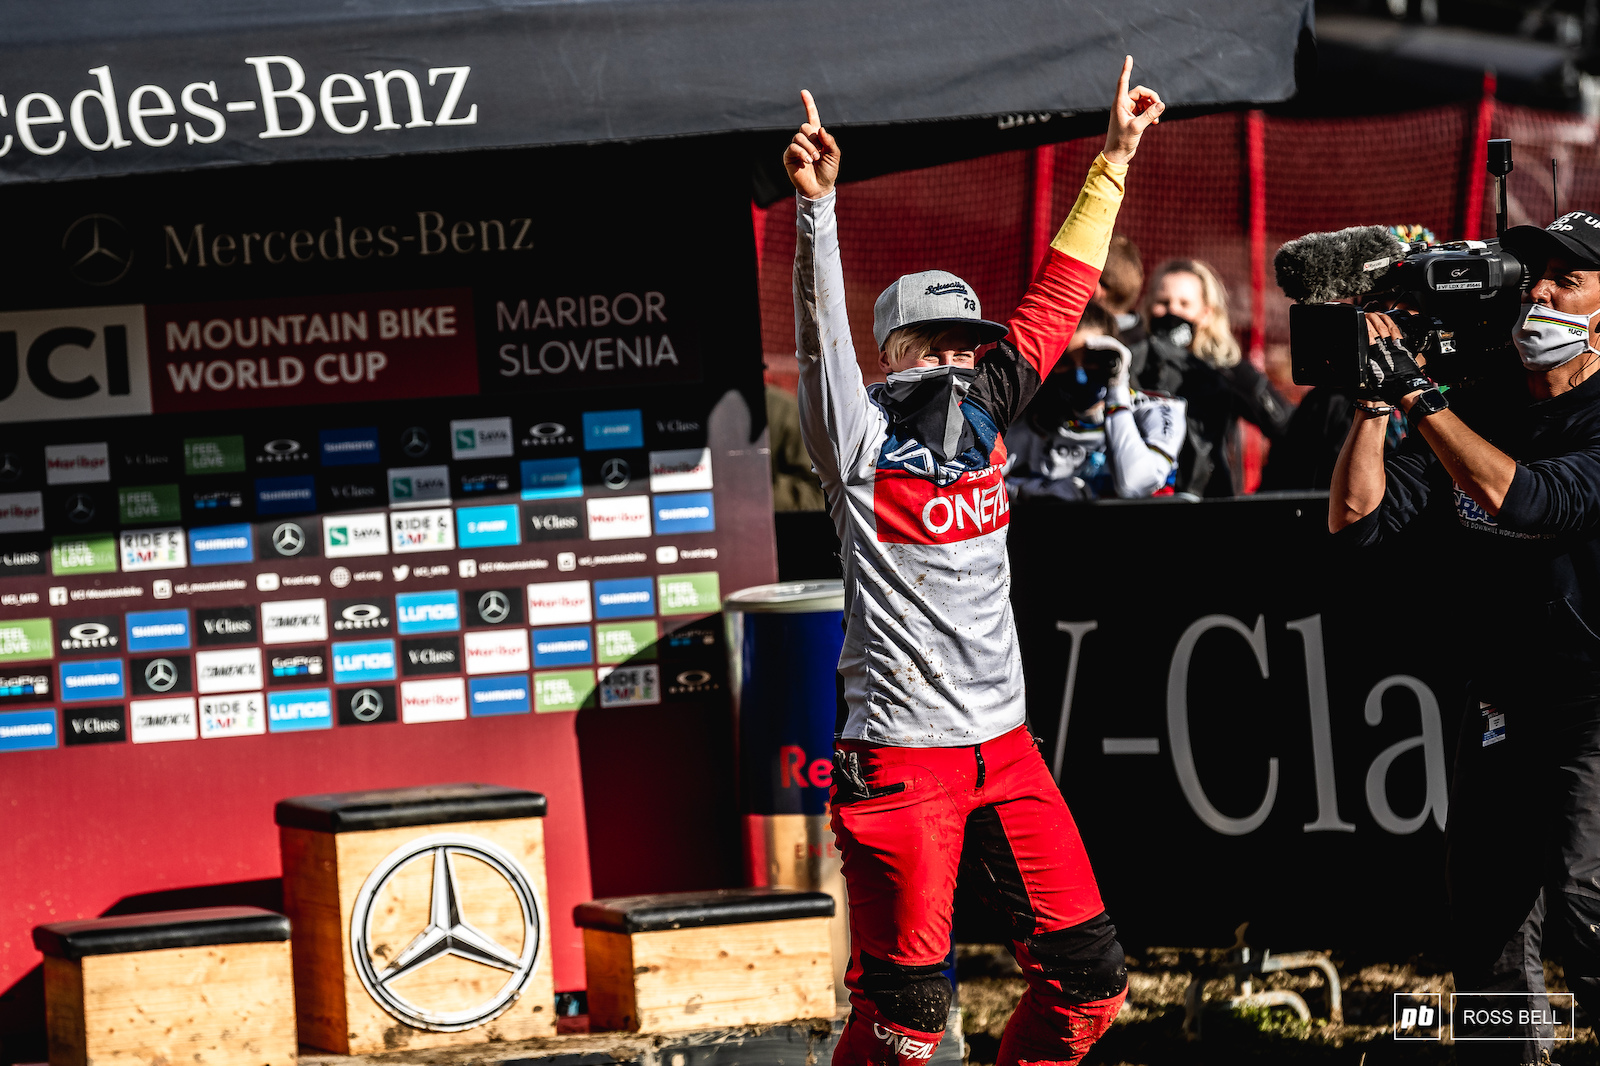 Nina Hoffmann had to wait out the final few riders in the hot seat to see if she could hold on to take her first win. A messy and mistake-ridden run from the last rider down the hill Myriam Nicole meant she did just that.